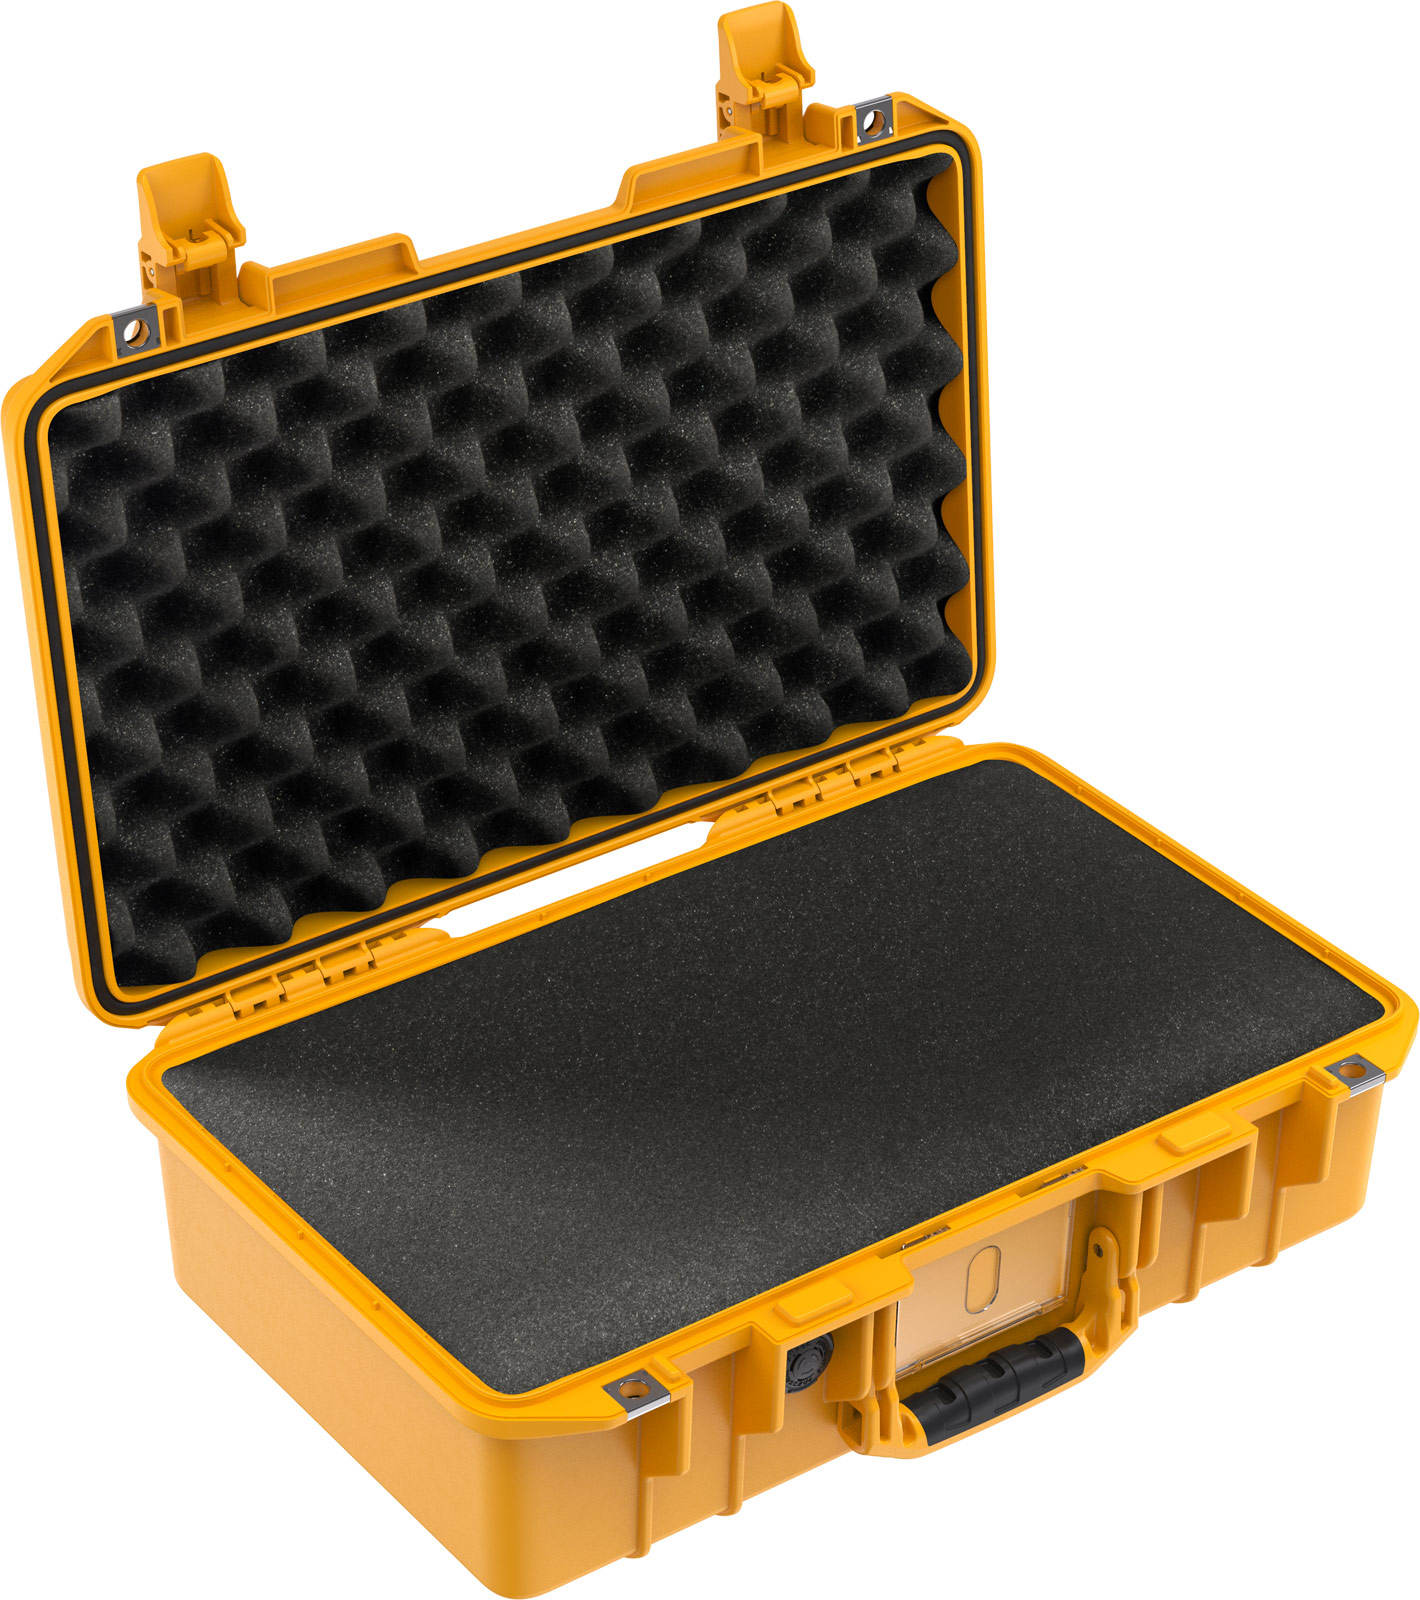 pelican air 1485 yellow camera foam case